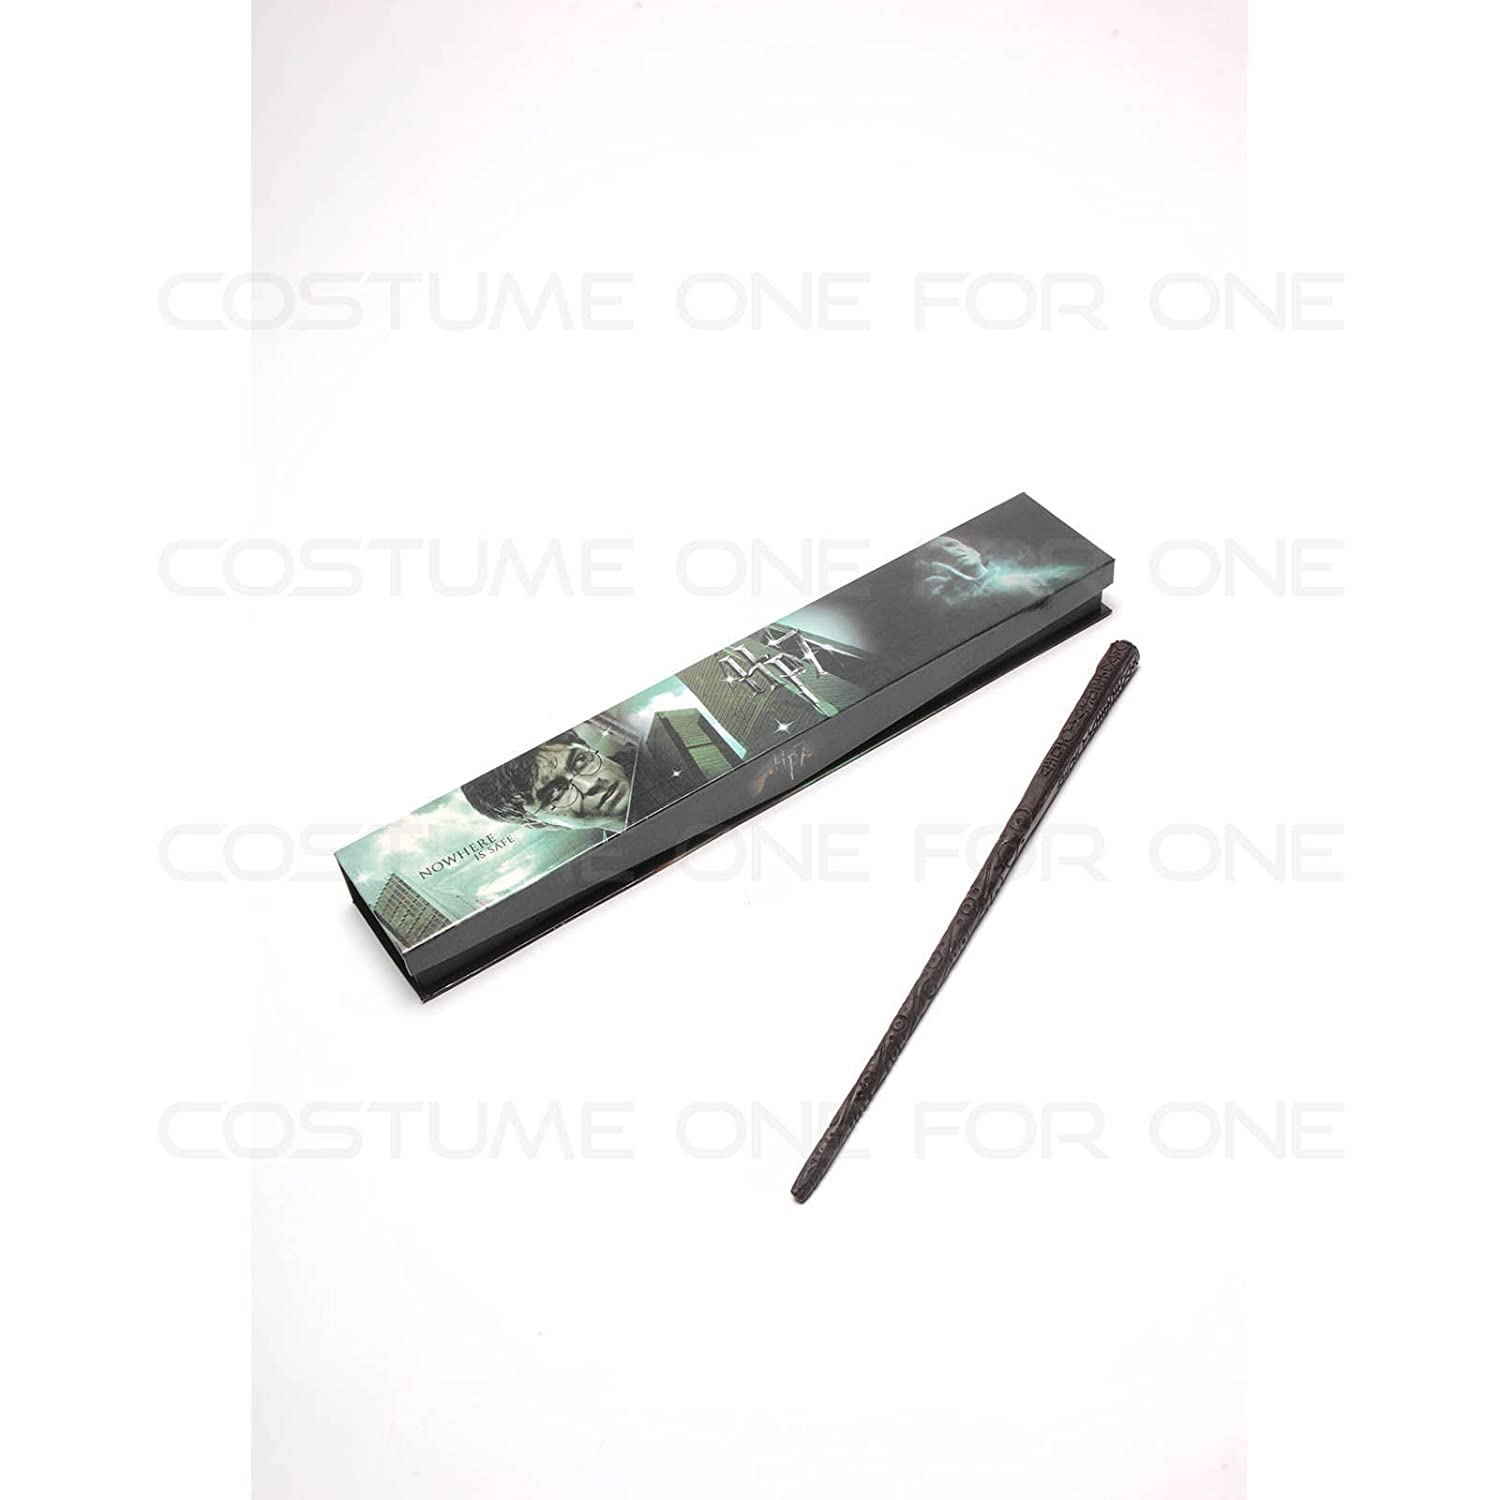 Hotcorner/® Harry Potter Sirius Black Magical Wand Replica Cosplay in Gift Box Party Show Halloween Witches Costume